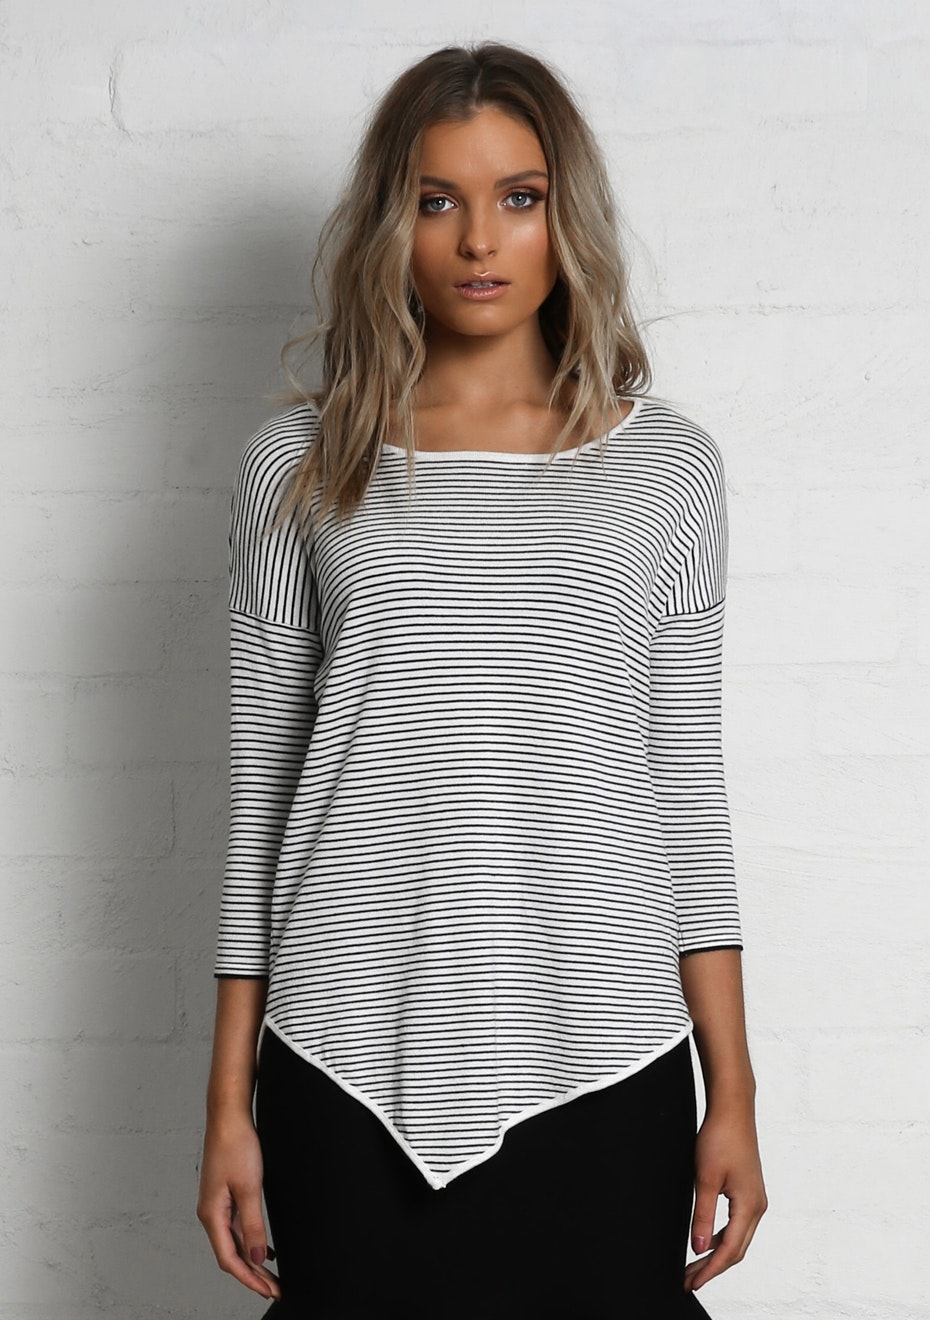 Madison - BUILDING BLOCKS KNIT - STRIPE